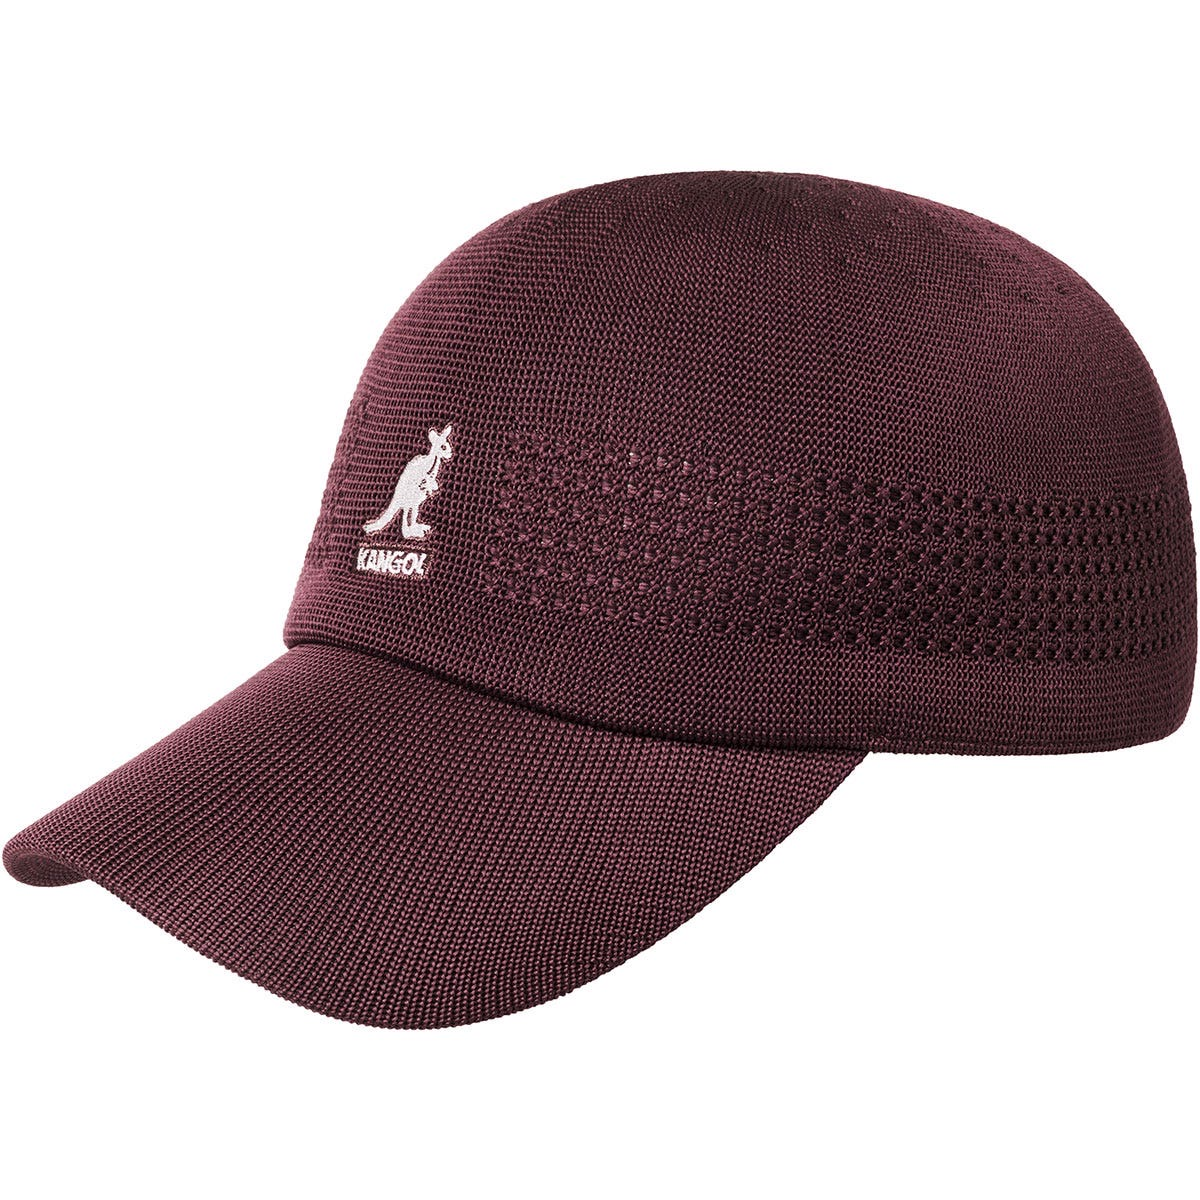 Kangol Tropic Ventair Spacecap Cordovan